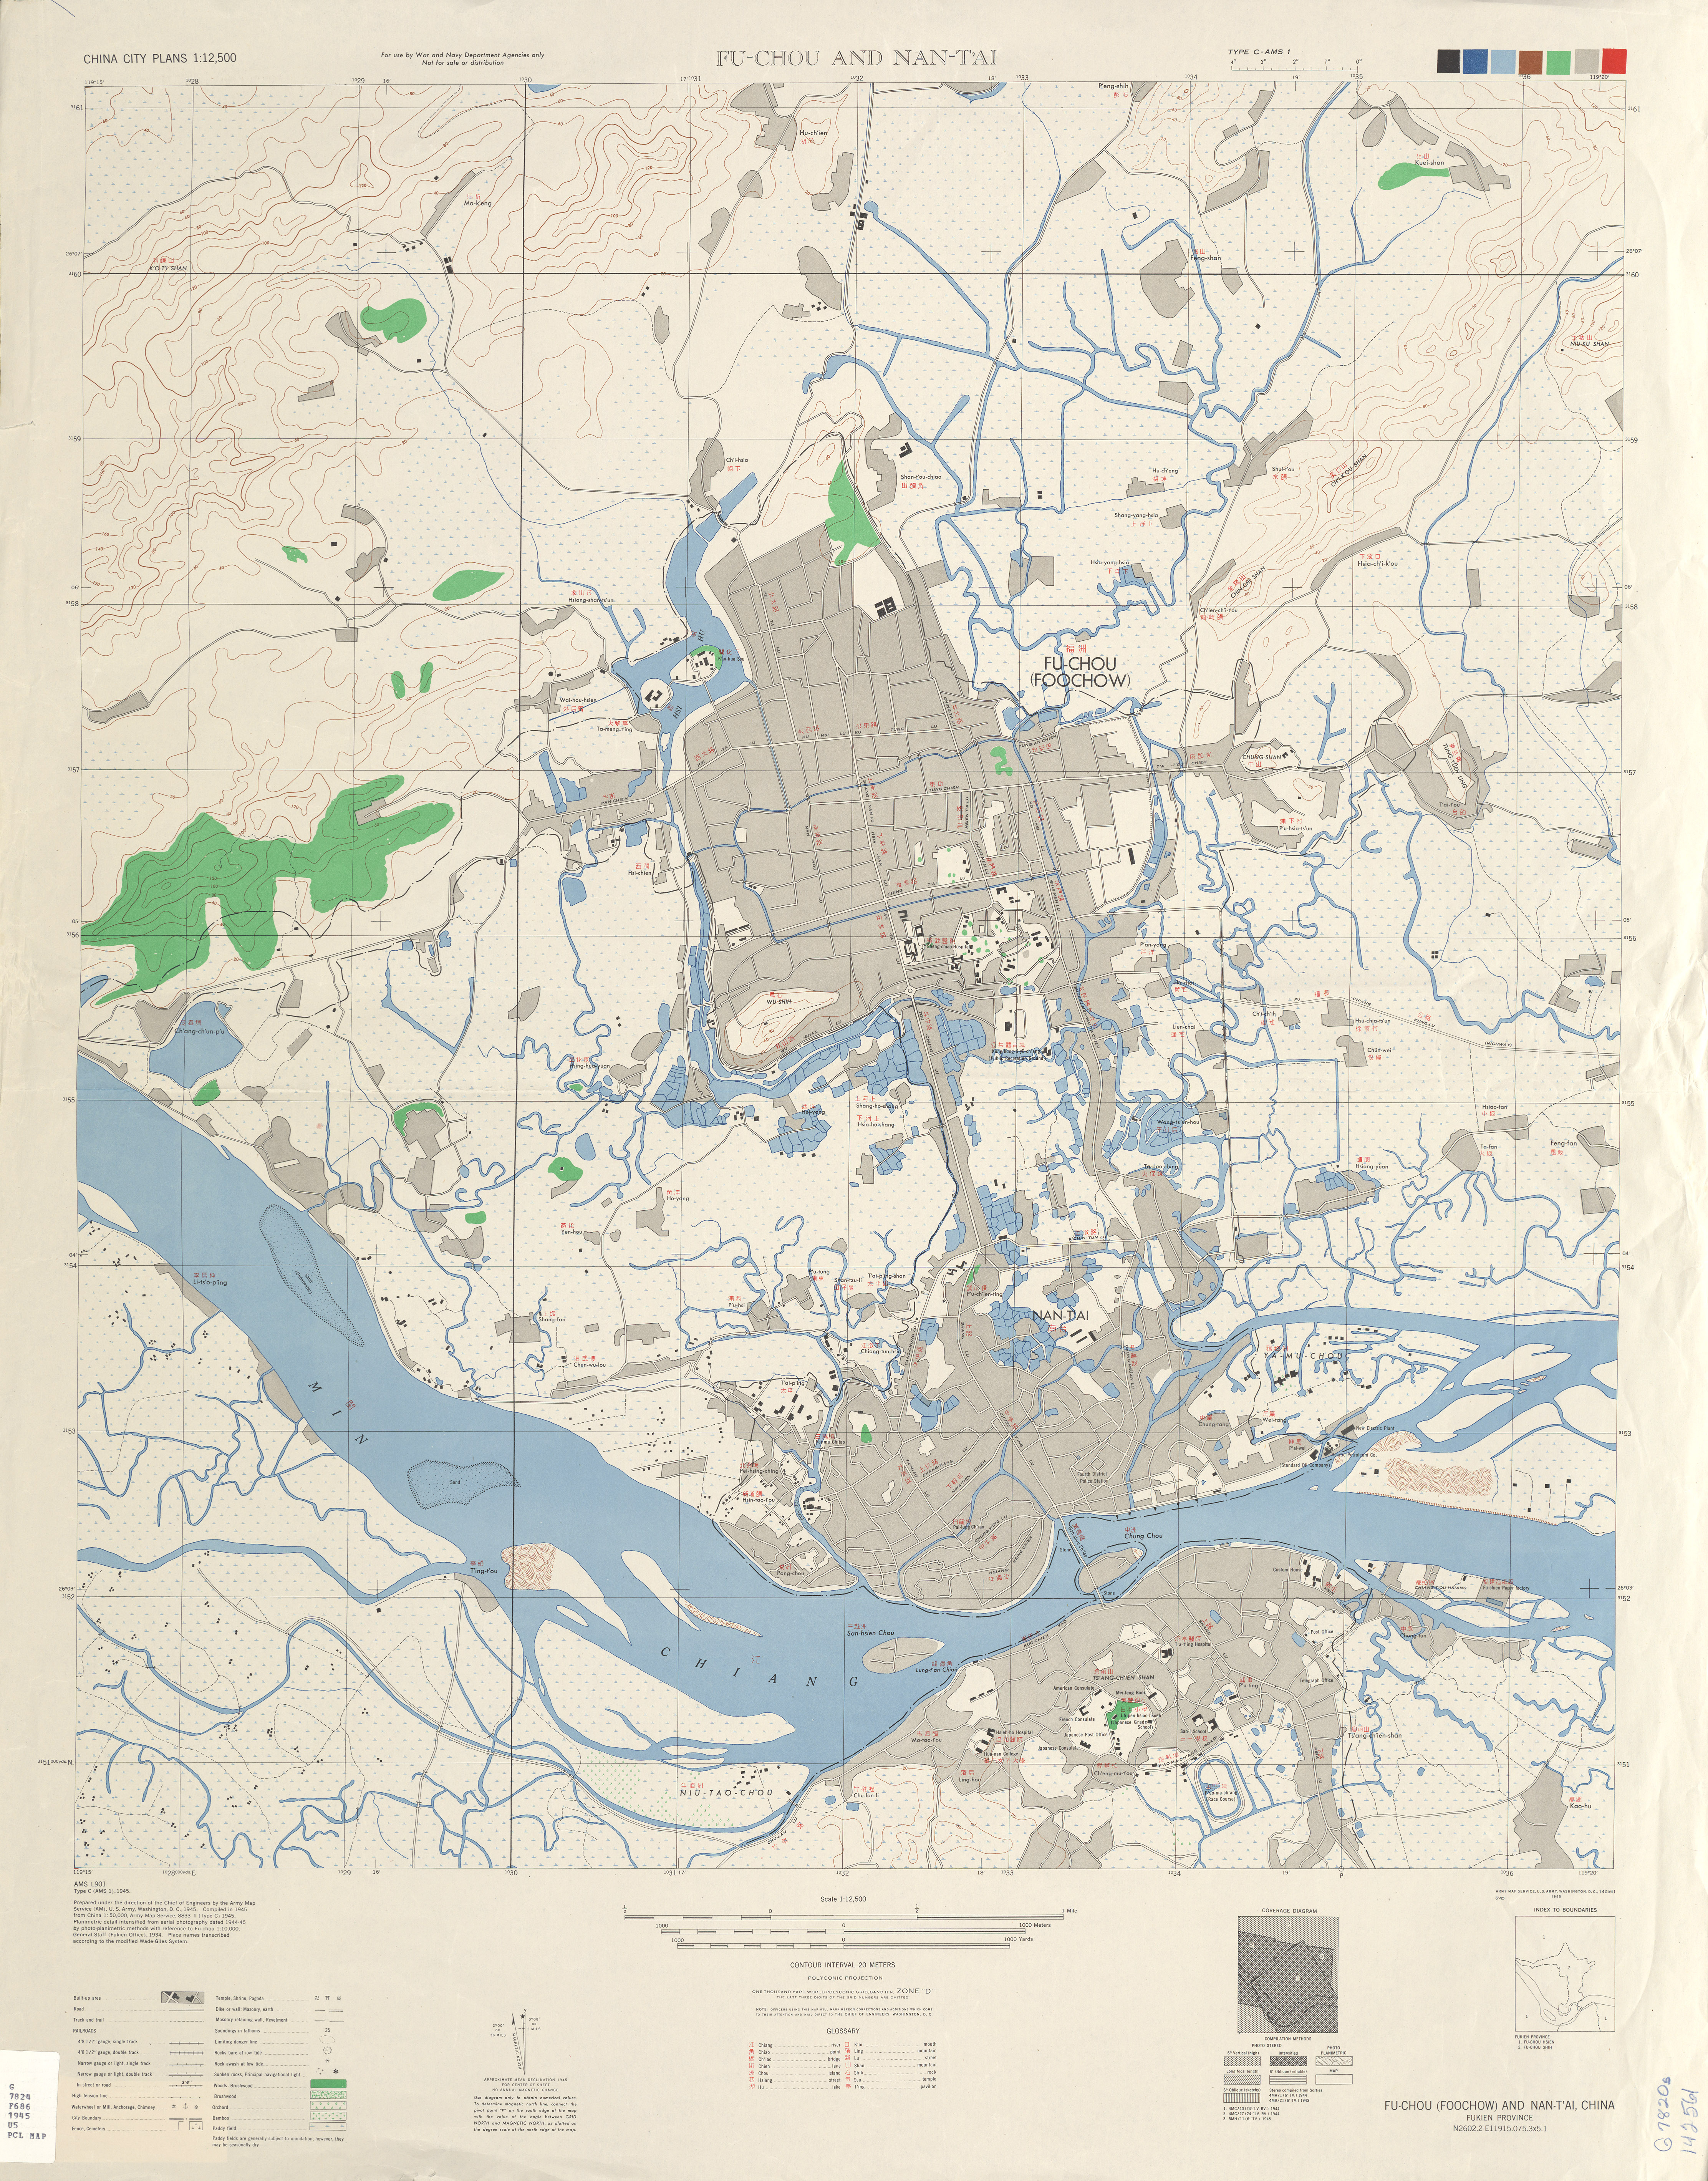 China historical maps perry castaeda map collection ut library fu chou and nan tai 1945 gumiabroncs Choice Image